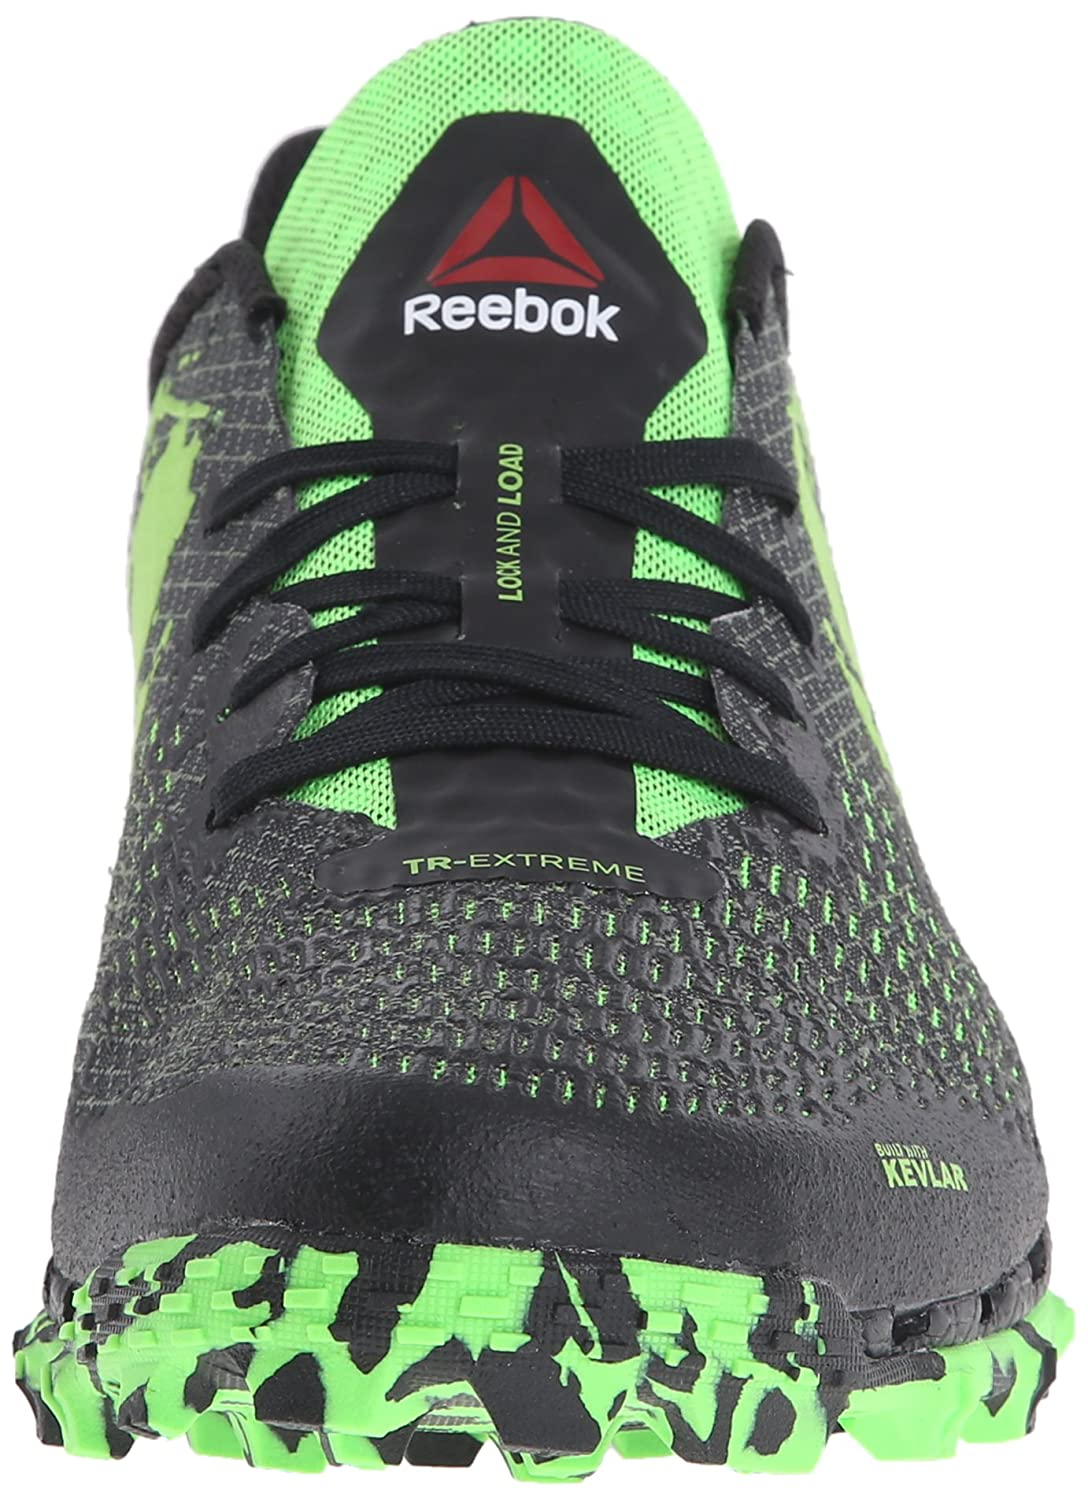 e38b316ab7b57 Reebok Men s All Terrain Extreme Wc Trail Running Shoe Gravel Black Solar  Green 8.5 D(M) US  Buy Online at Low Prices in India - Amazon.in